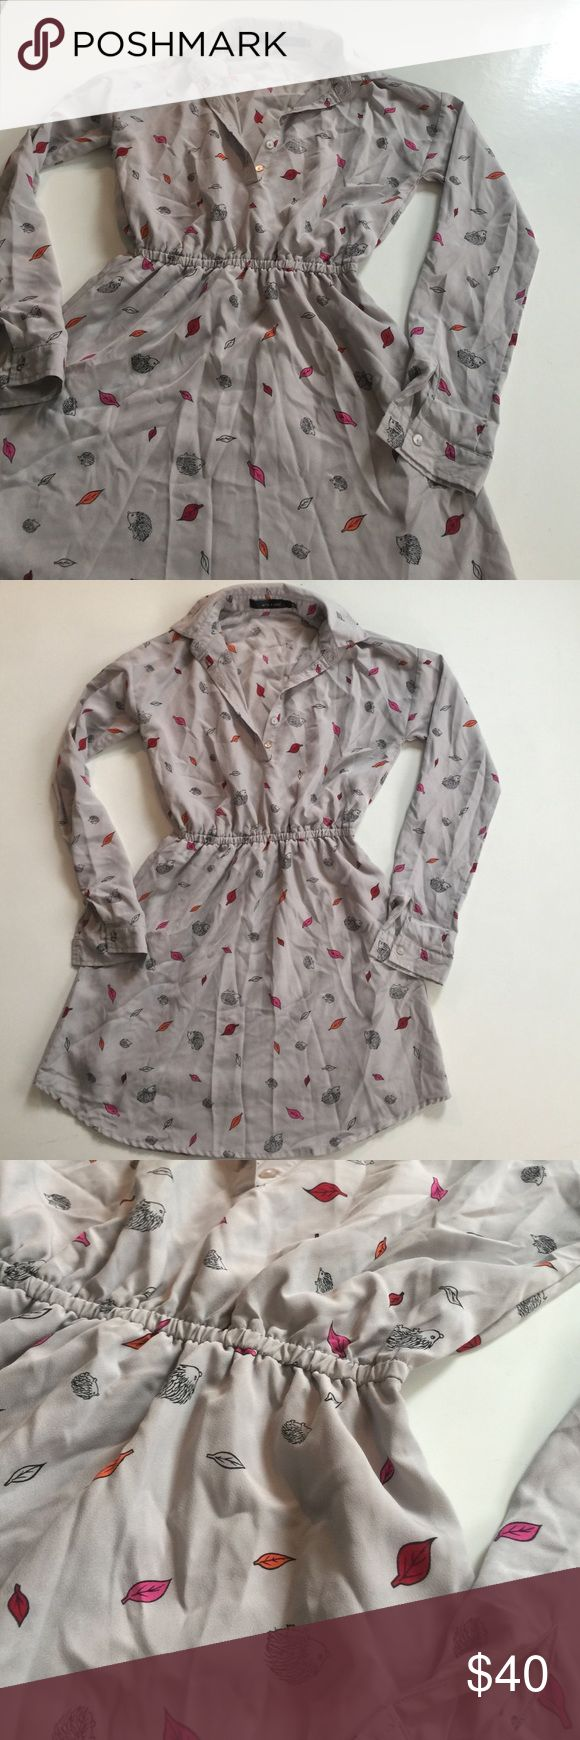 Women's Grey shirt dress XXS Absolutely adorable and never worn. Fits a waist size 25/26 best! Purchased from urban outfitters but never worn. Feature sweet porcupines and leaves :) Urban Outfitters Dresses